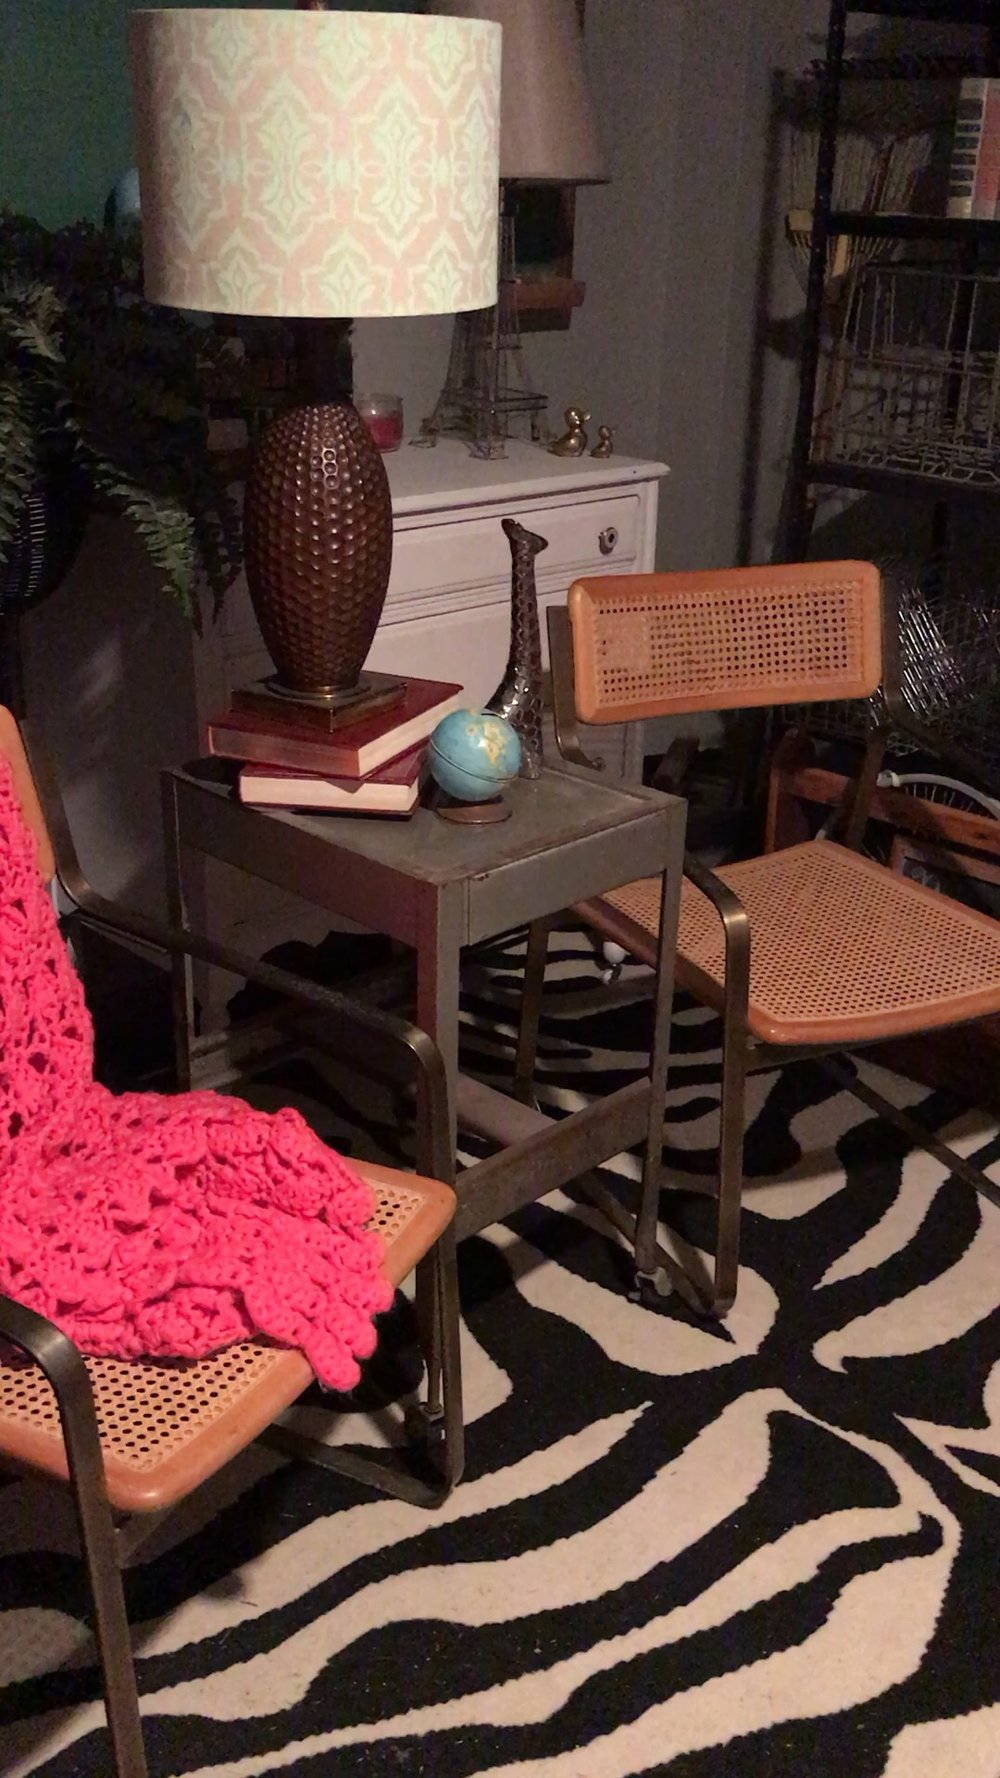 End table with a large table lamp between two vintage chairs with a pink crochet blanket on a zebra print rug. RustopiaConsulting.com